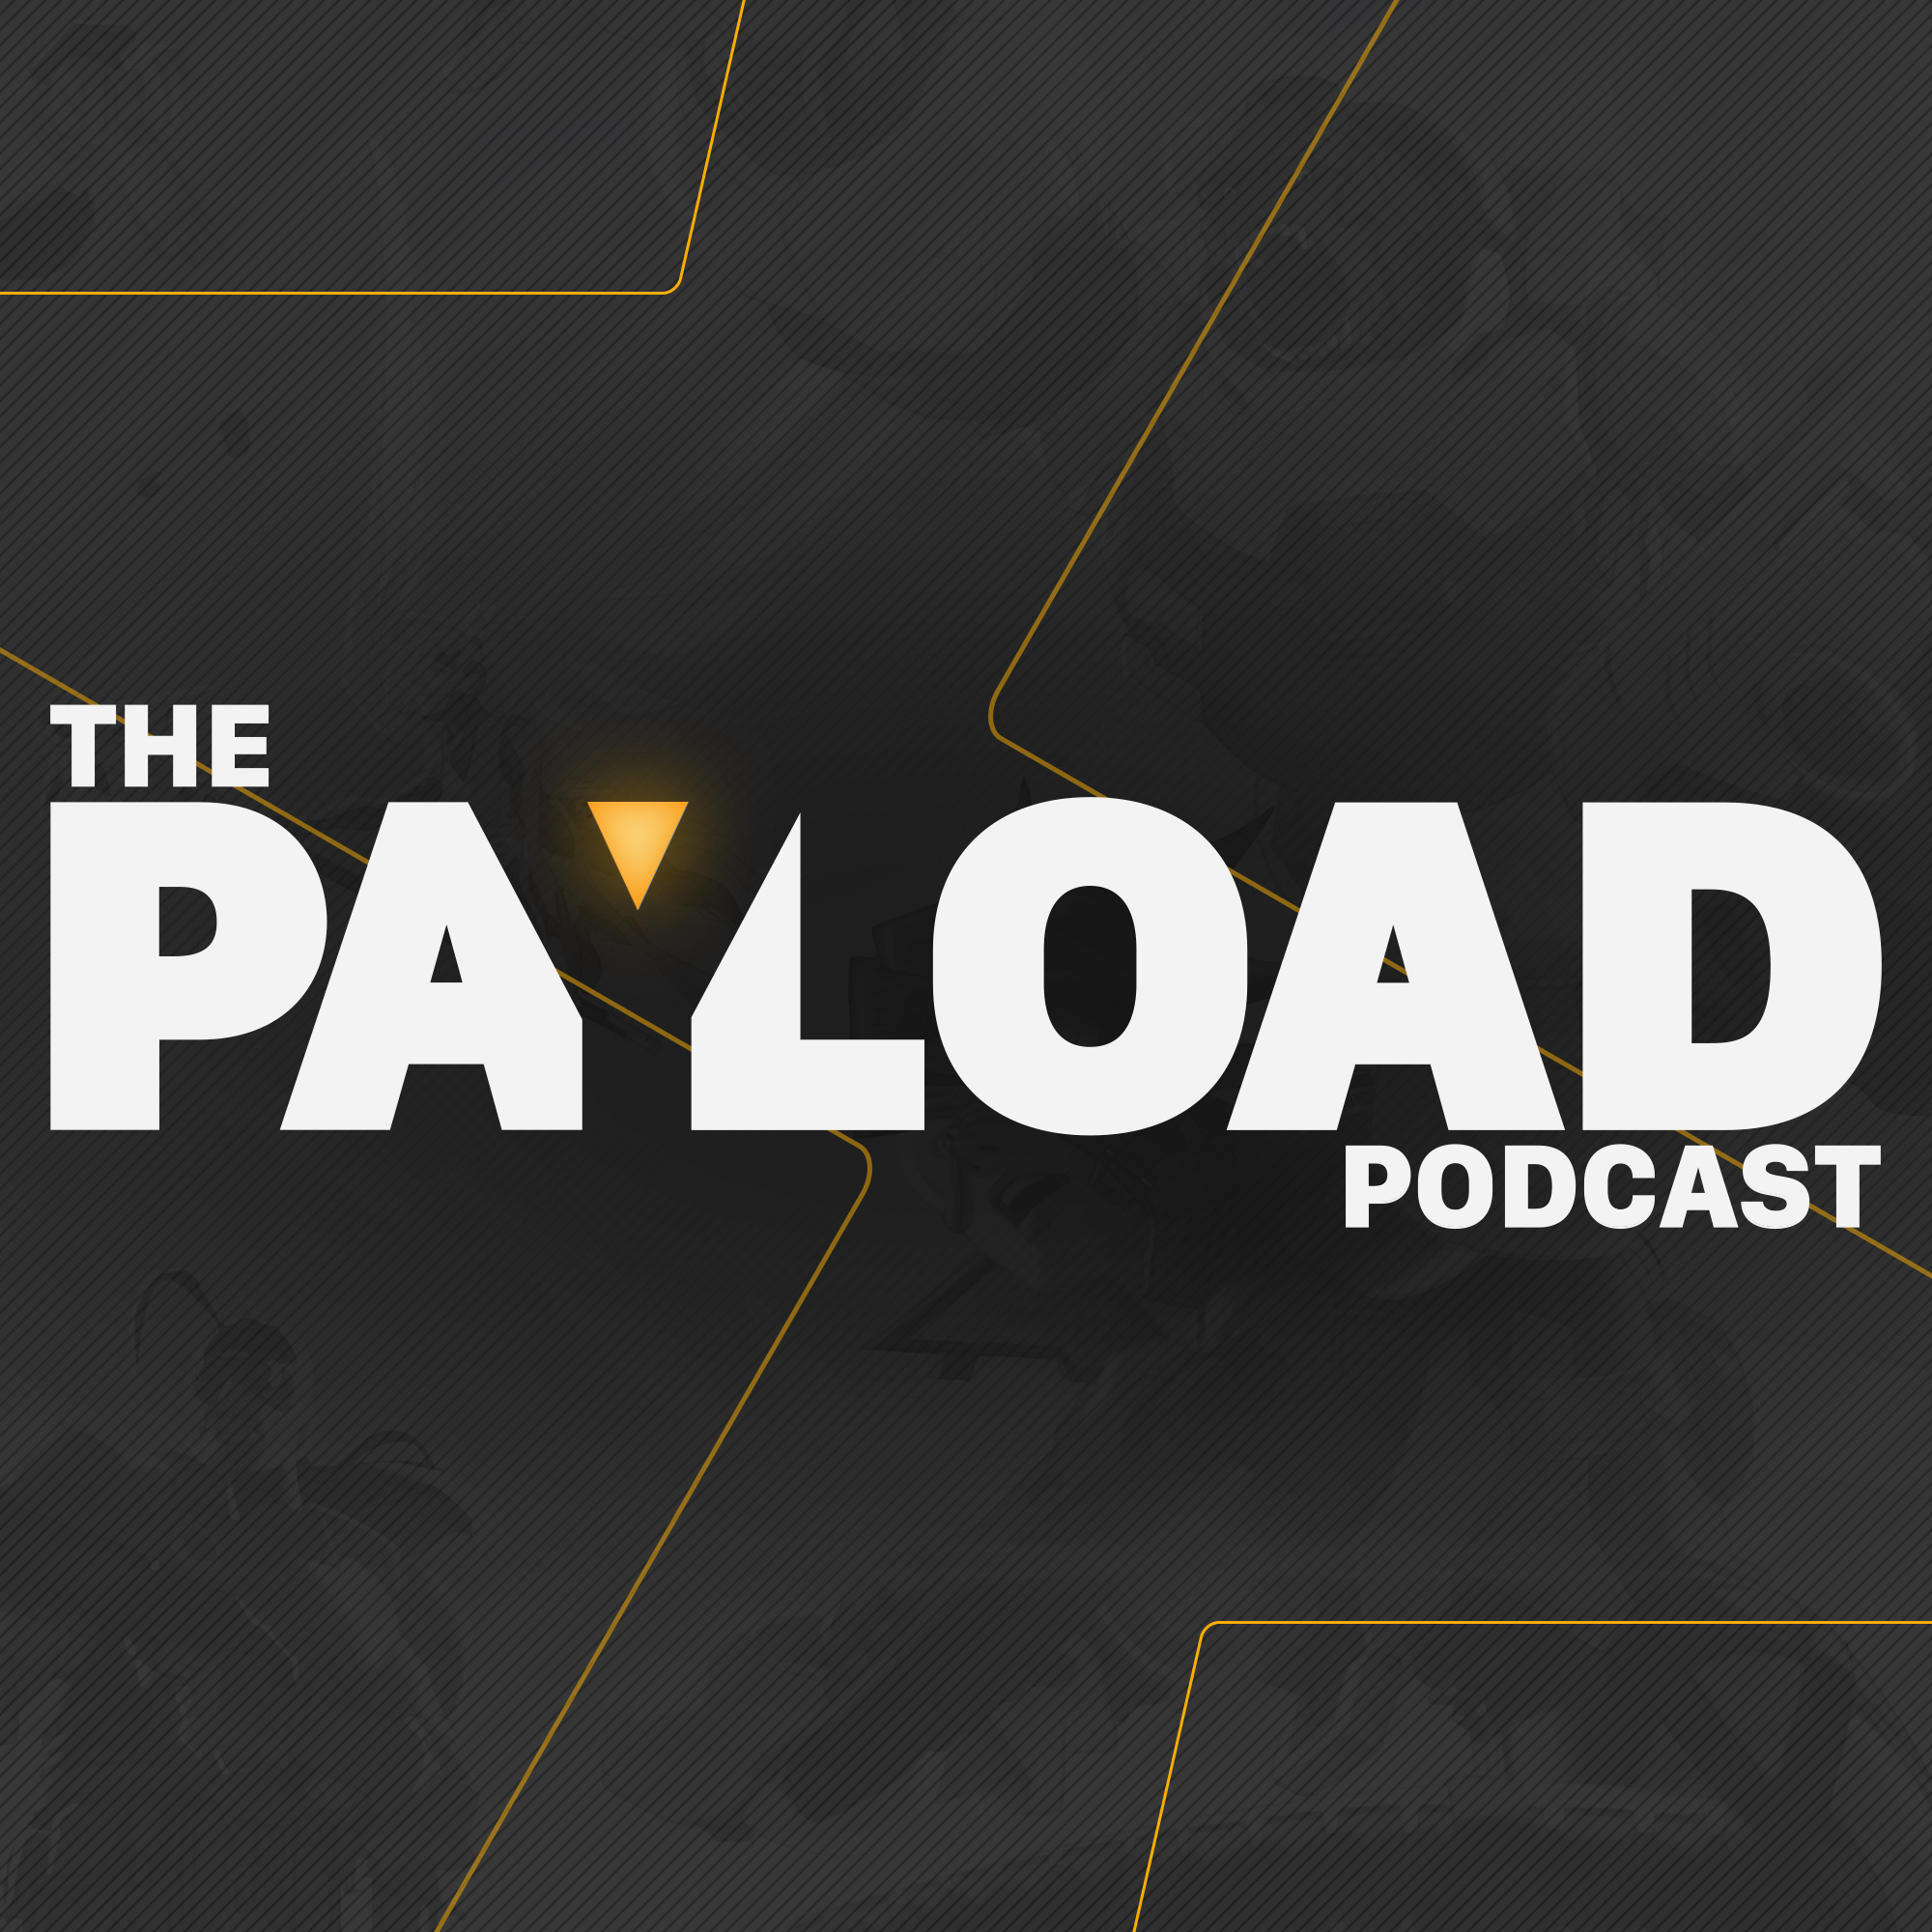 The Payload - An Overwatch Podcast from BlizzPro